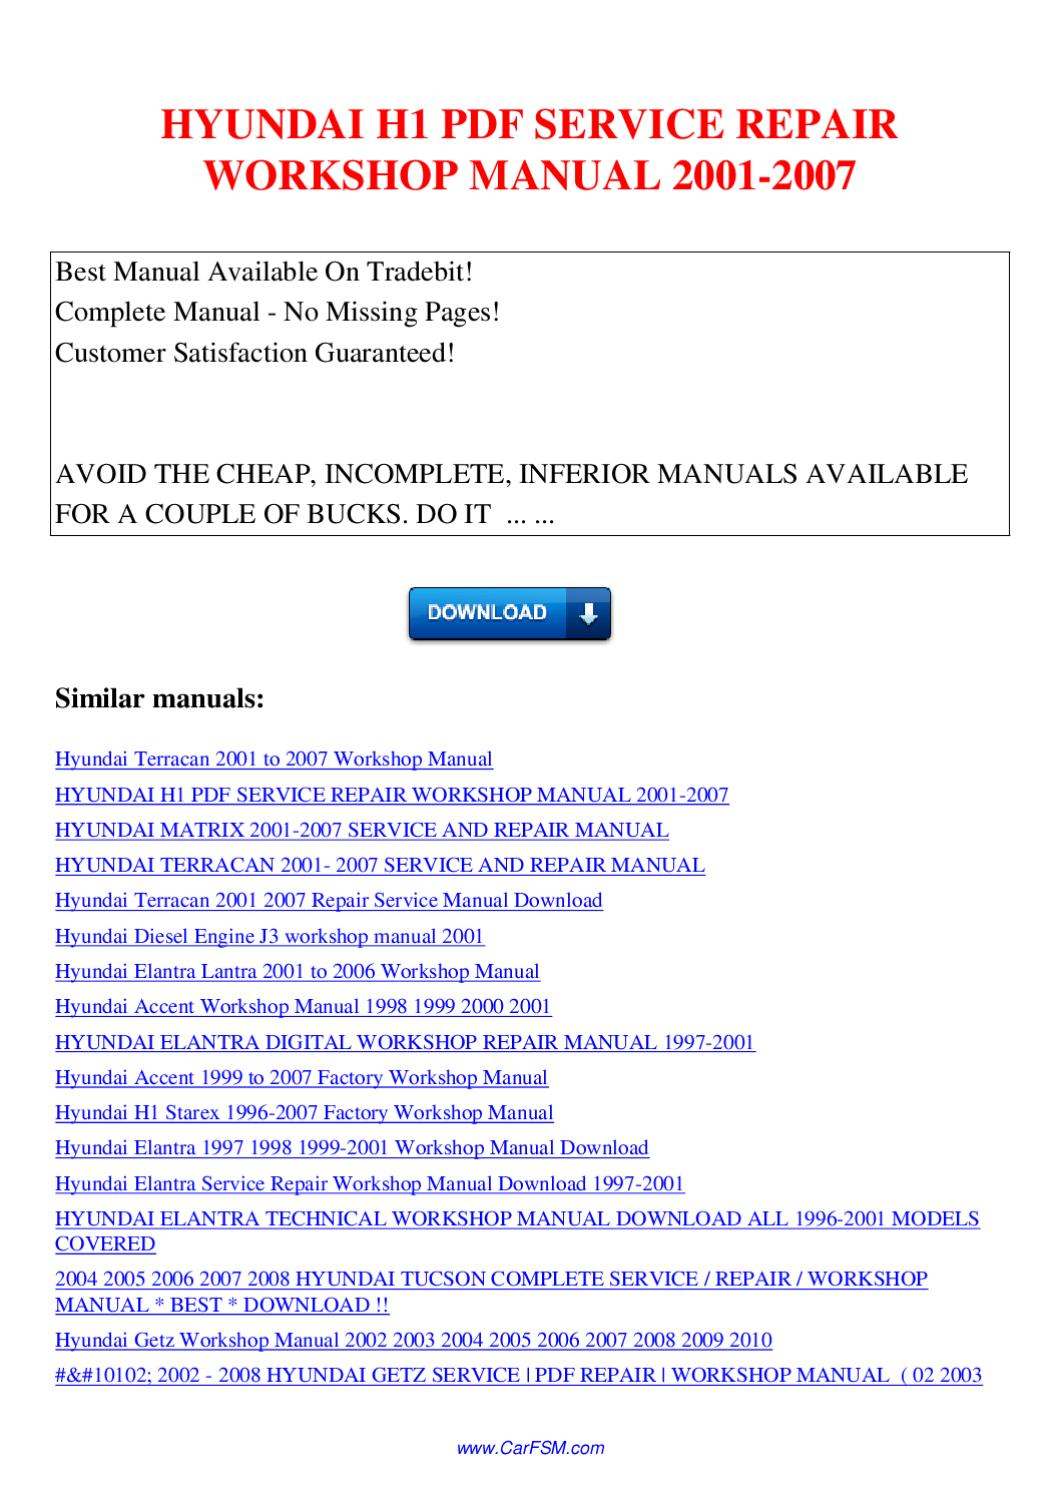 yamaha tdm900 service repair workshop manual 2002 onwards